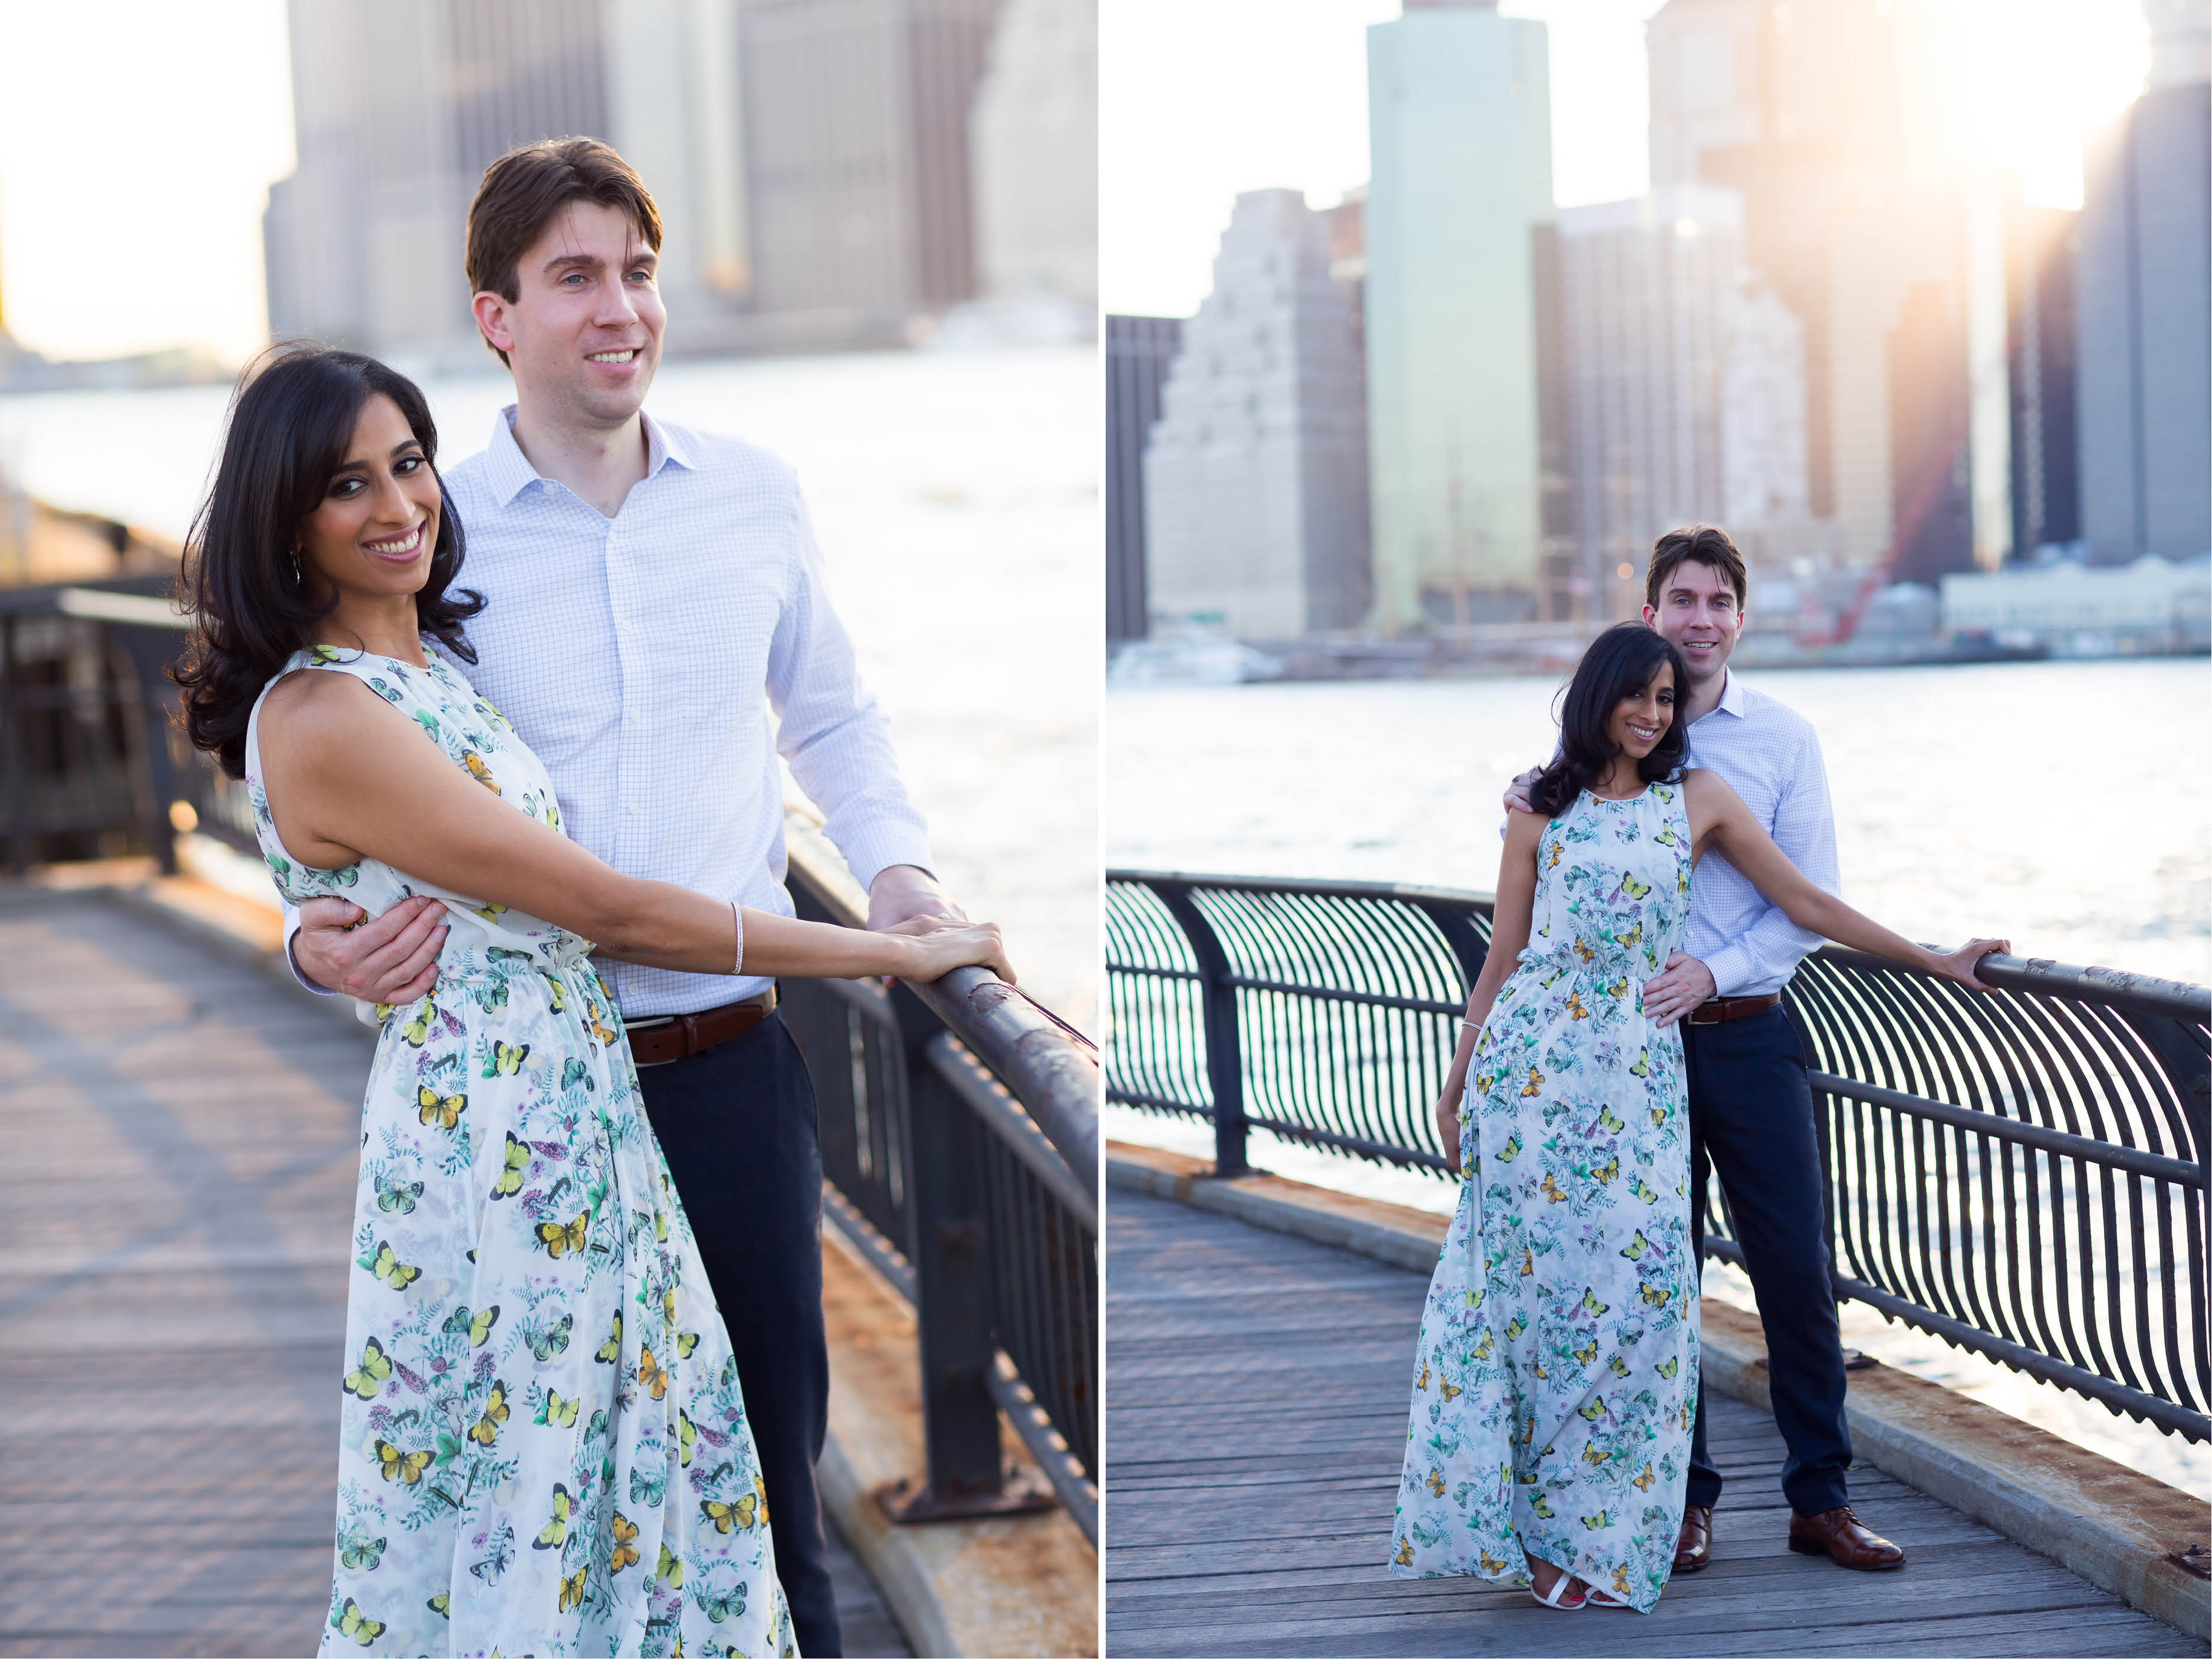 Emma_cleary_photography dumbo engagement12